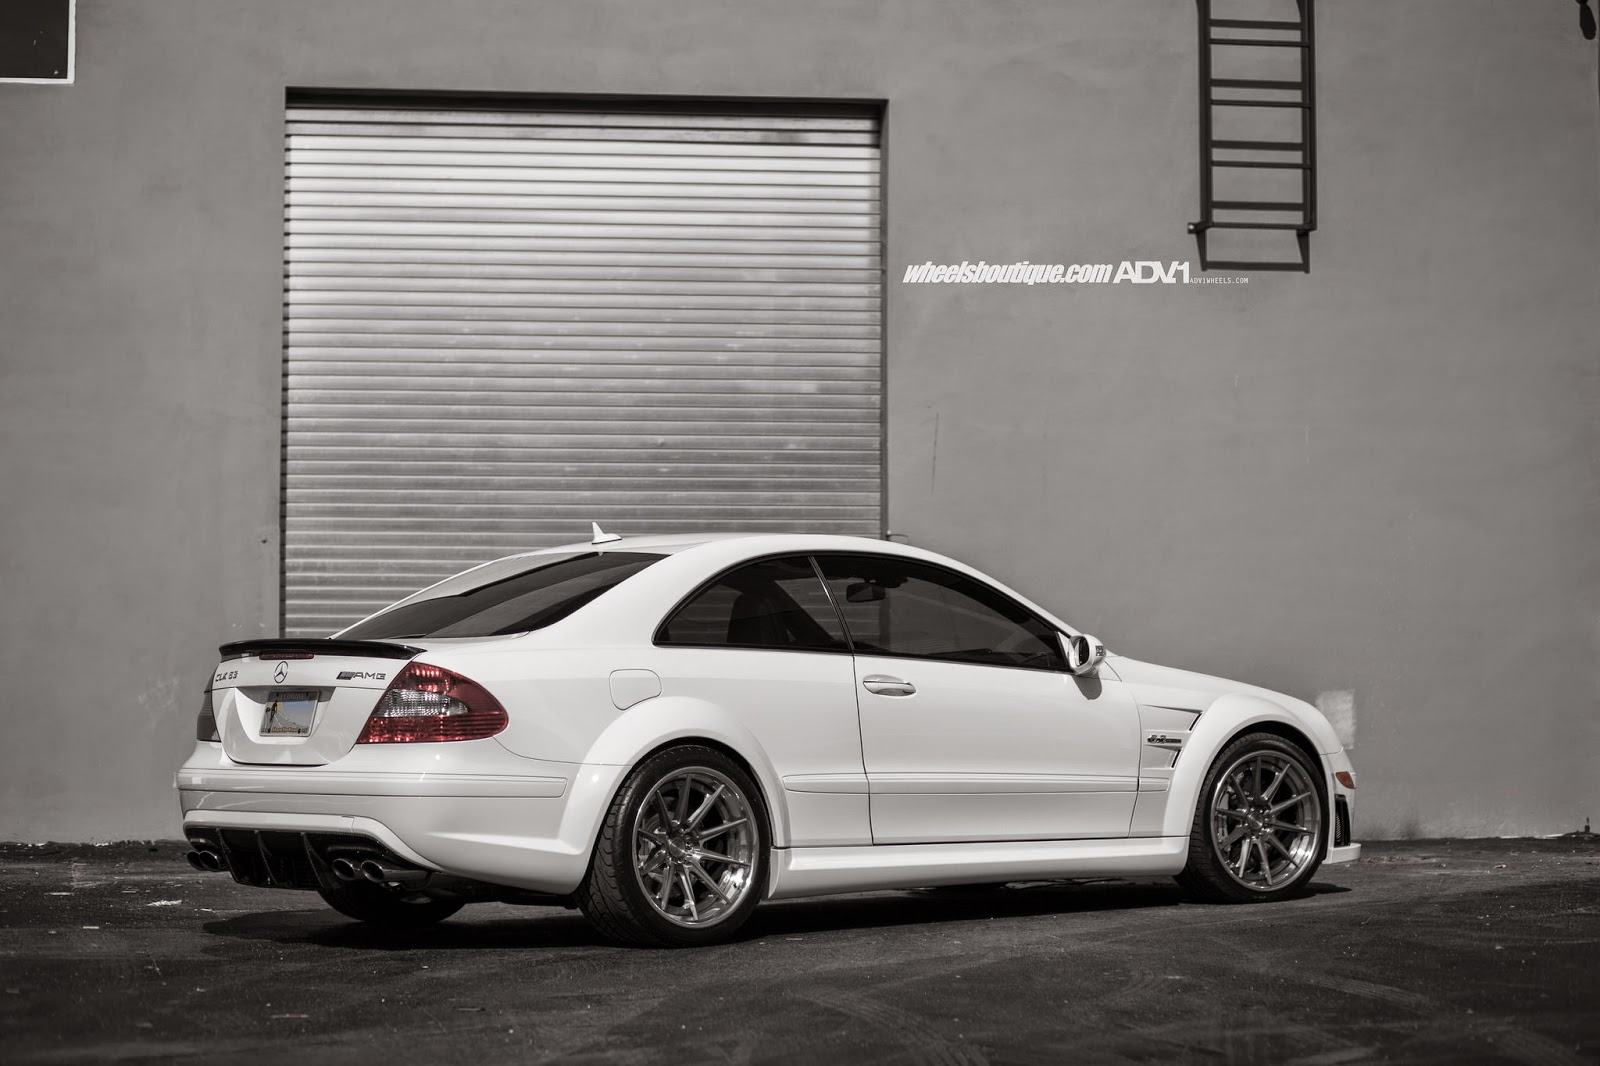 Mercedes benz clk63 amg black series on adv 1 wheels for Mercedes benz clk black series